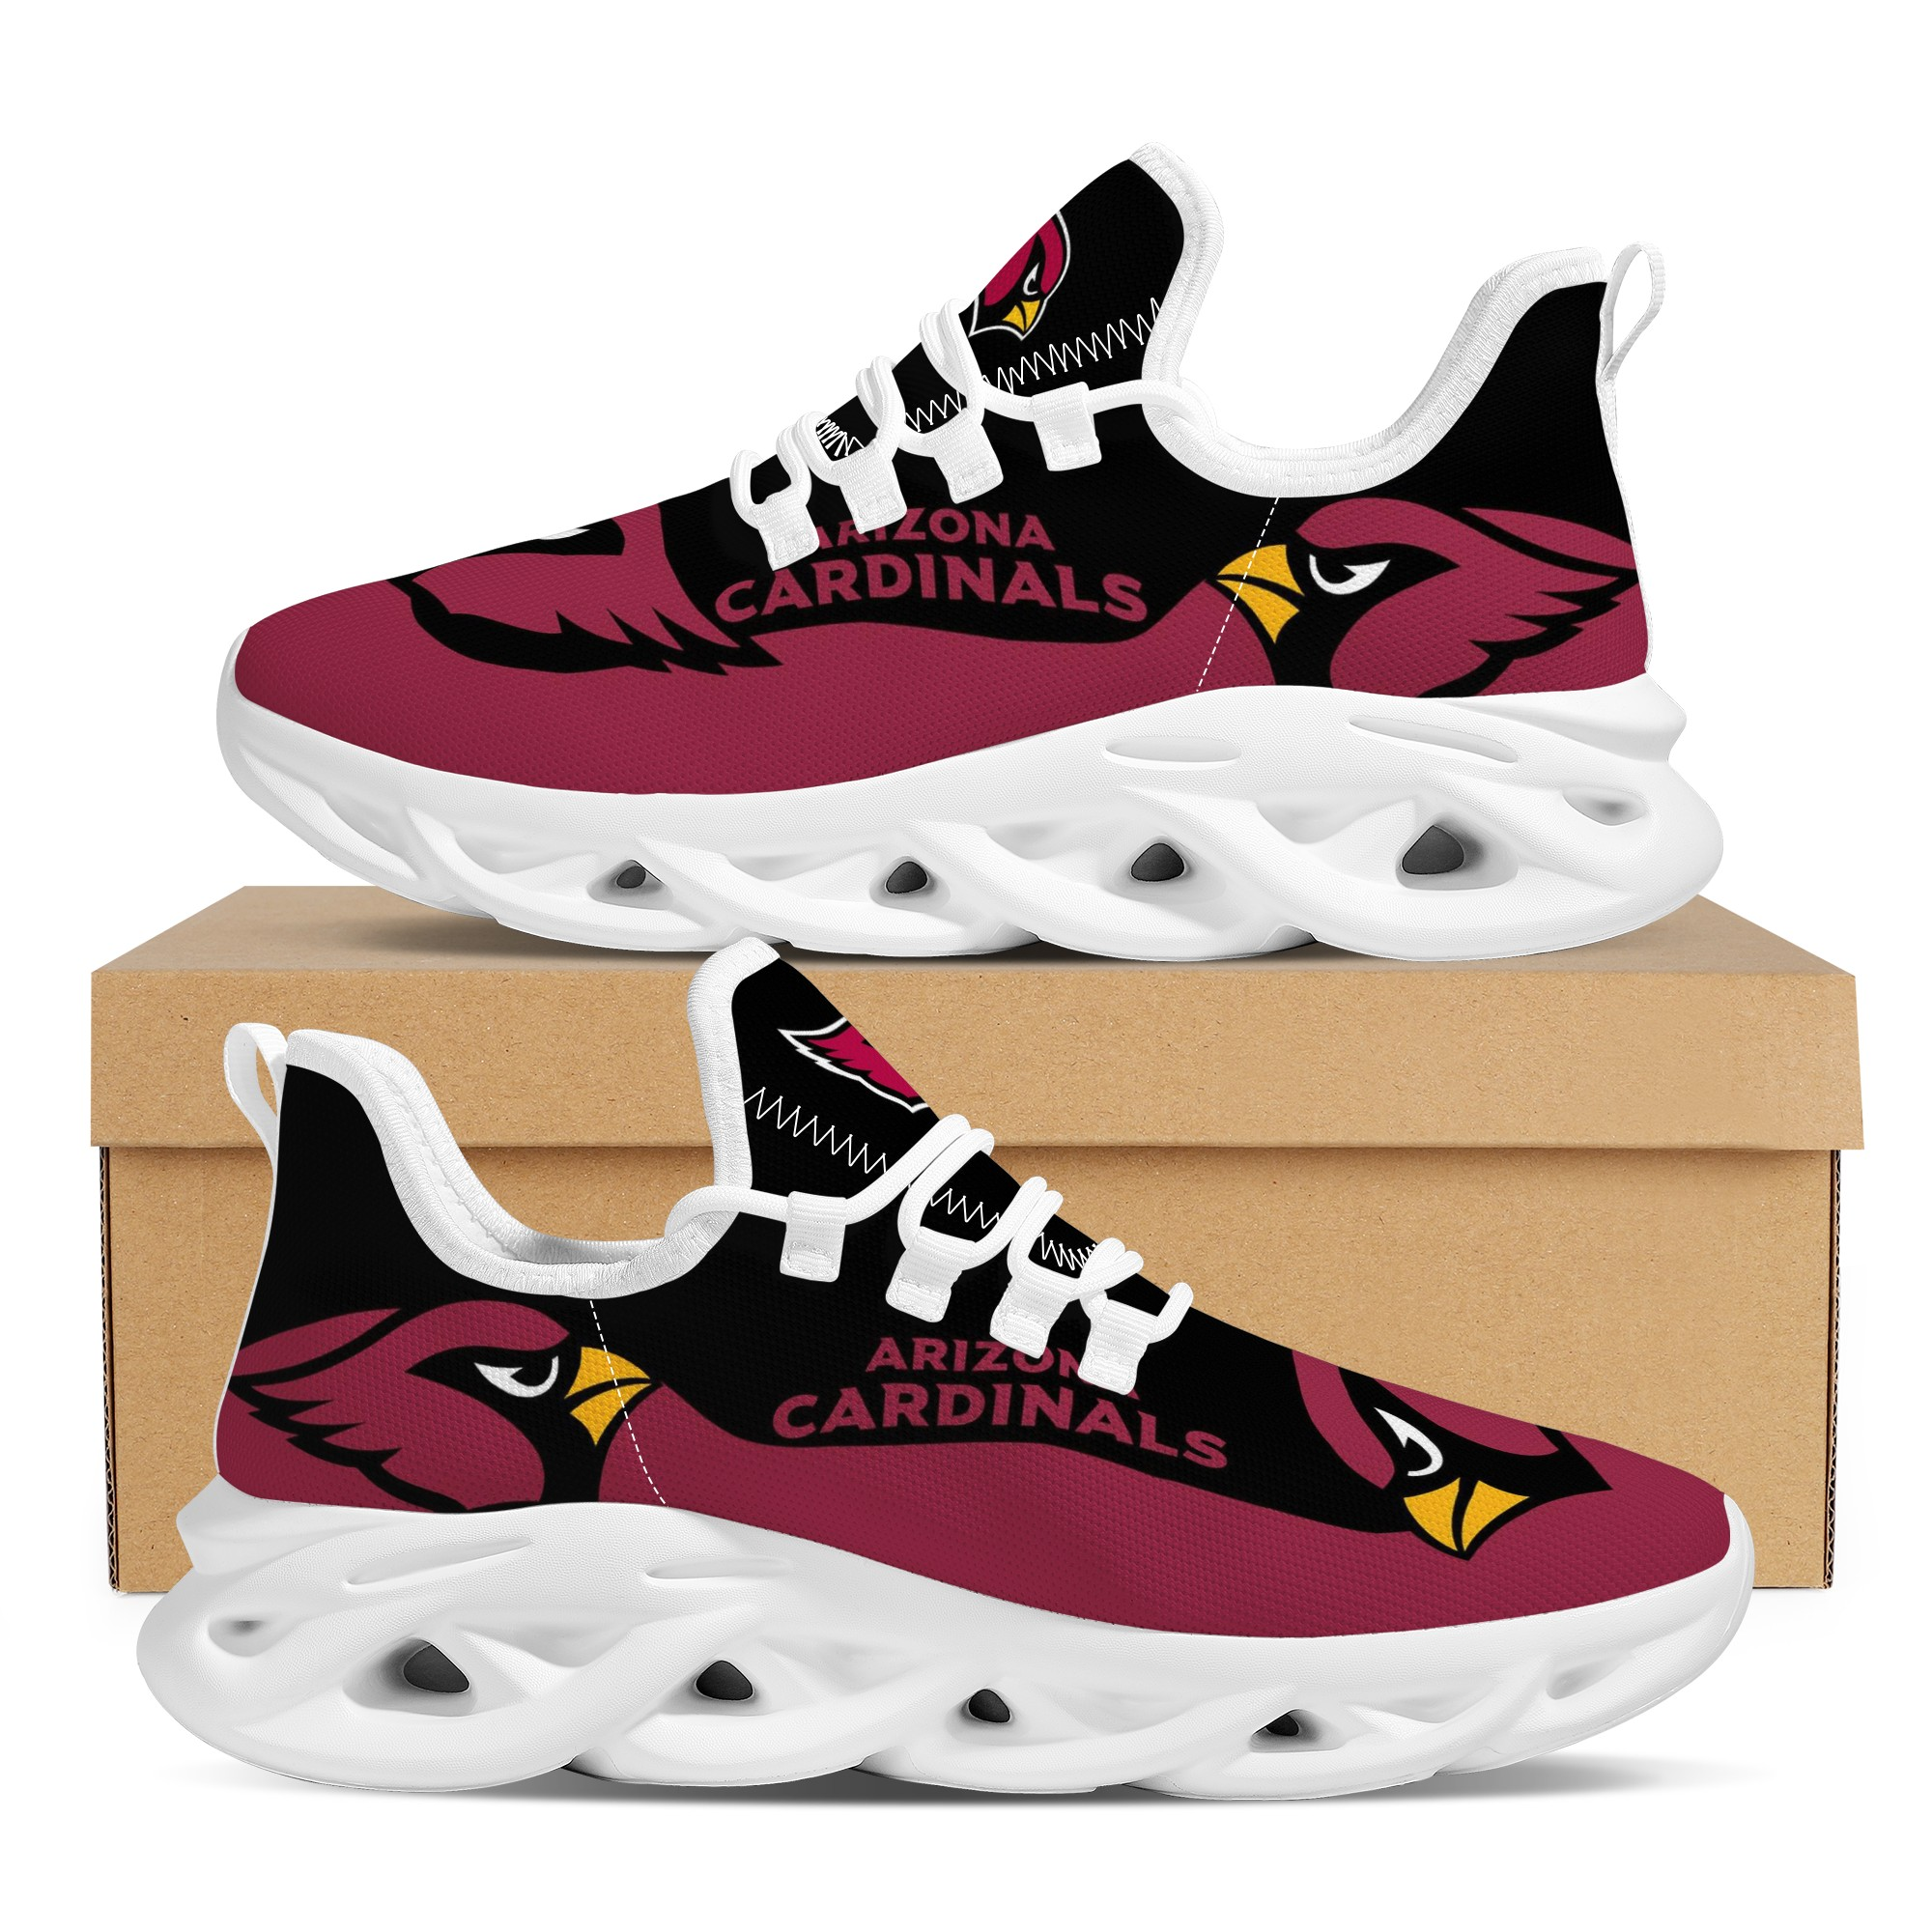 Men's Arizona Cardinals Flex Control Sneakers 002